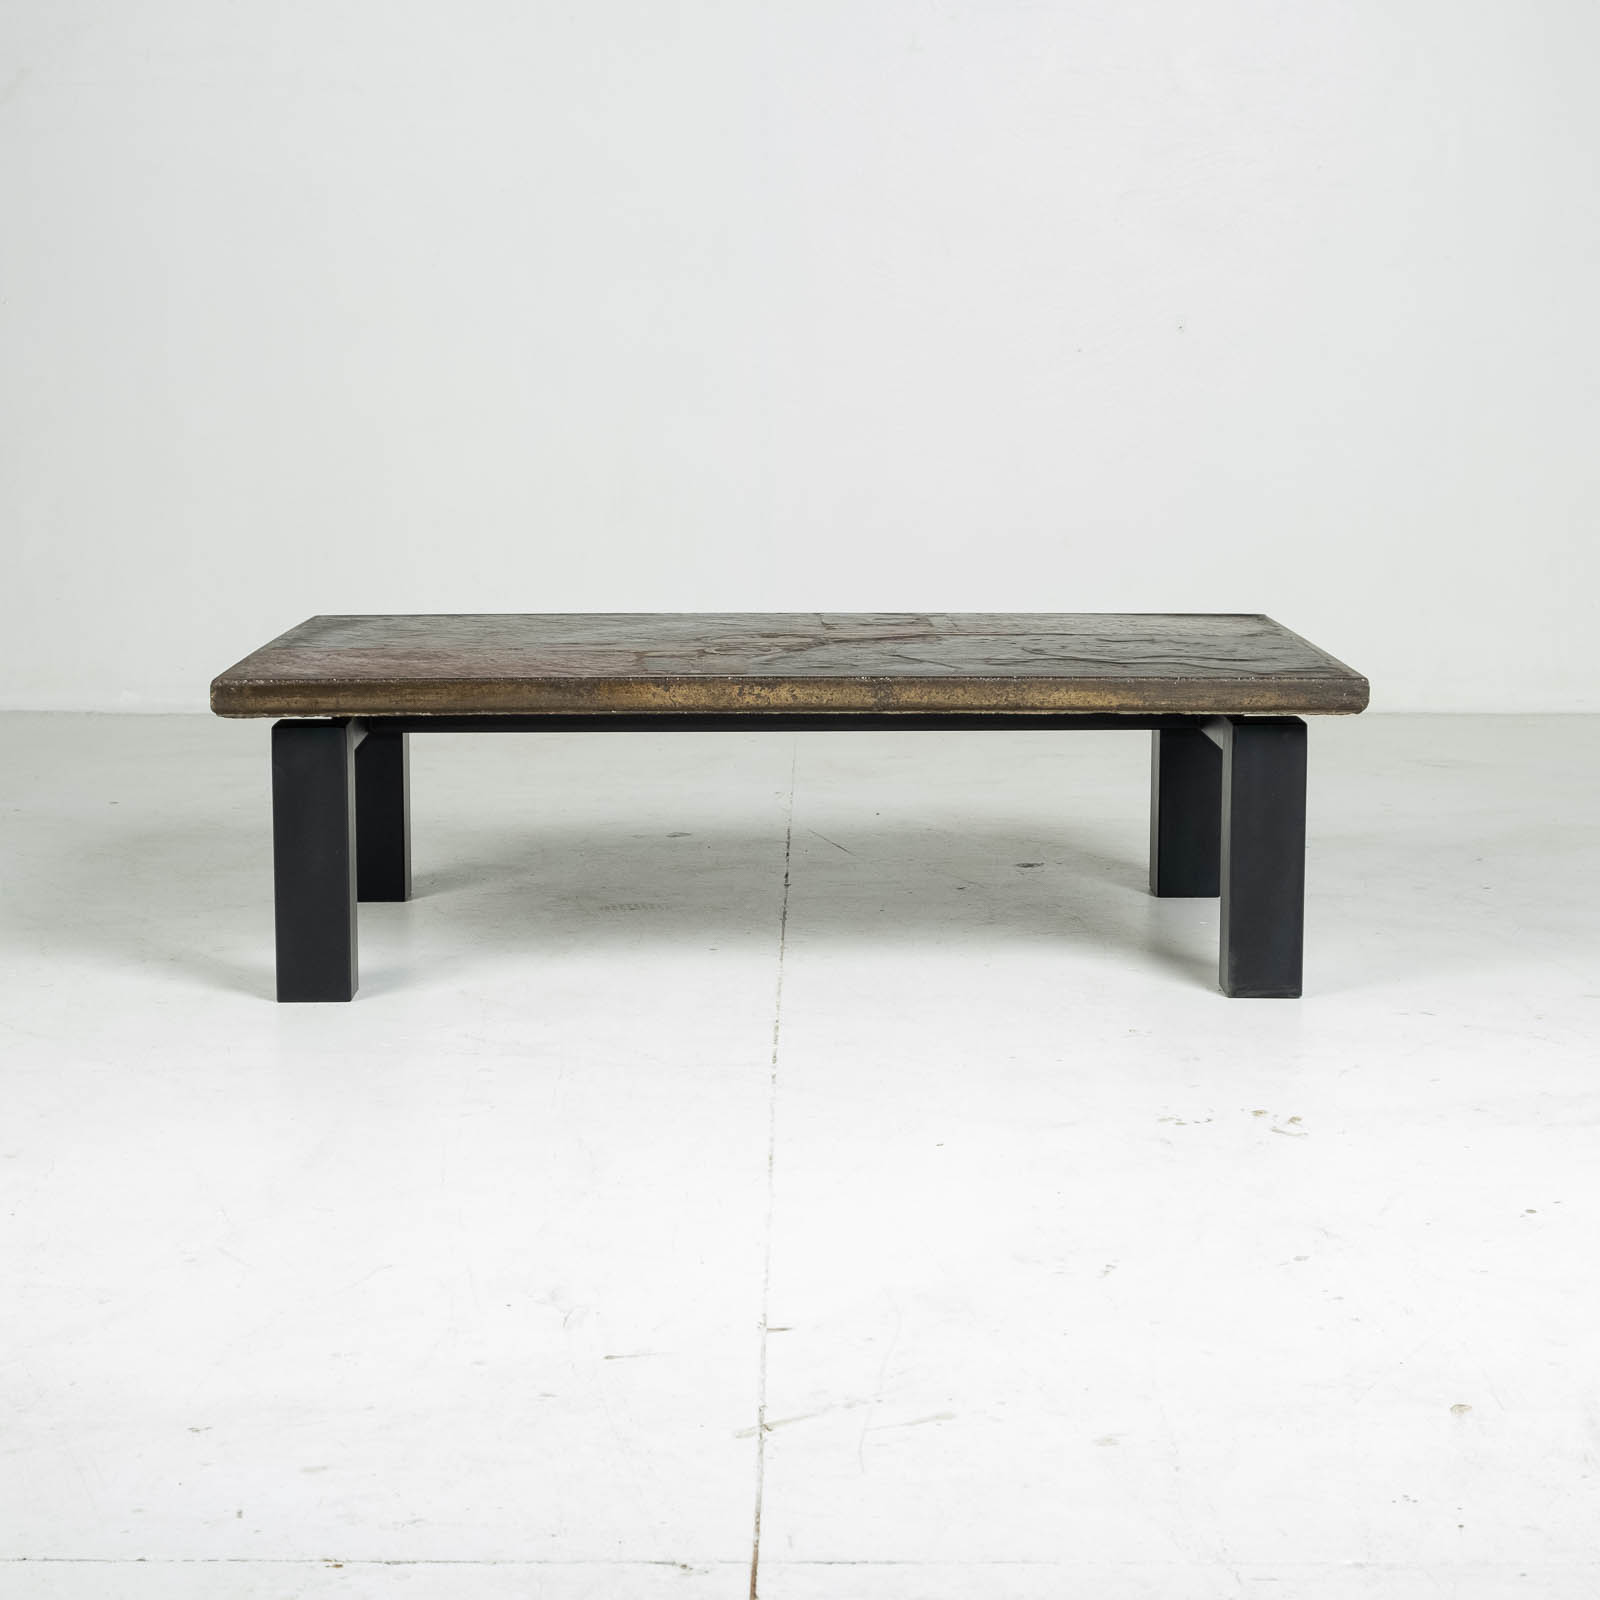 Rectangular Coffee Table By Paul Kingma In Stone And Slate, 1970s, The Netherlands 00007